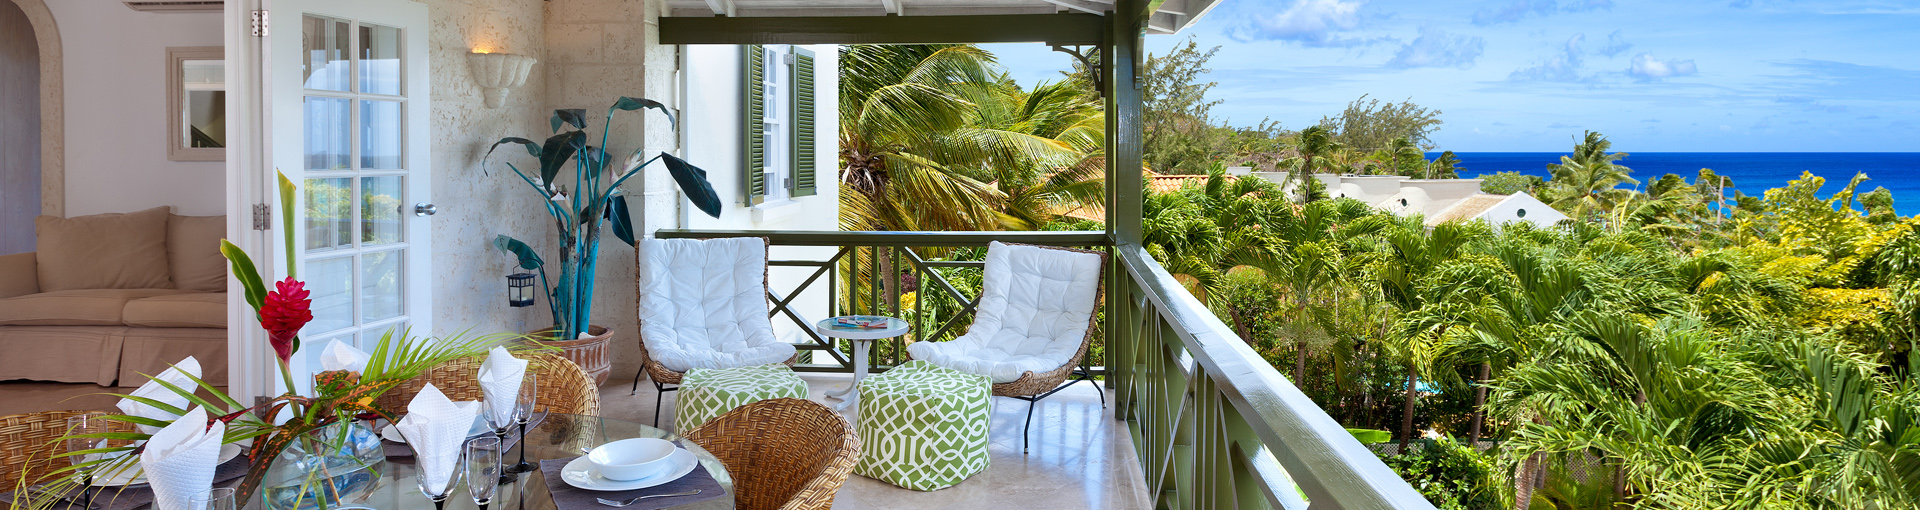 Beacon Hill Penthouse 305 - St. Peter, Barbados